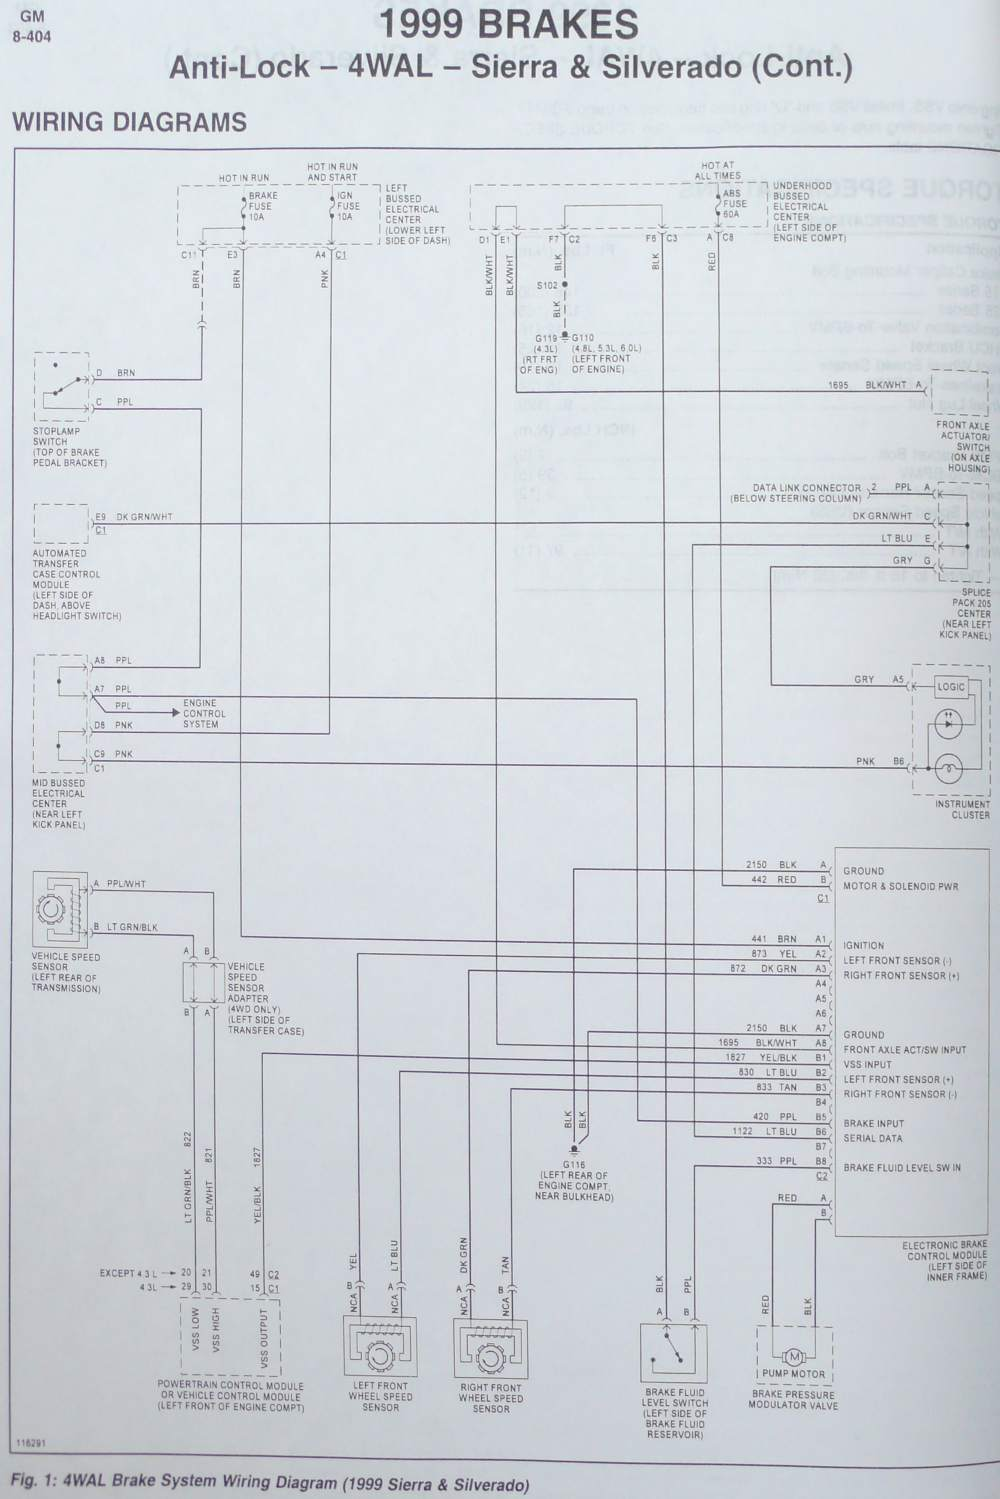 Kelsey Trailer Brake Controller Wiring Diagram 1999 Silverado Abs Trusted Online Need For Hayes 325 To Troubleshoot An